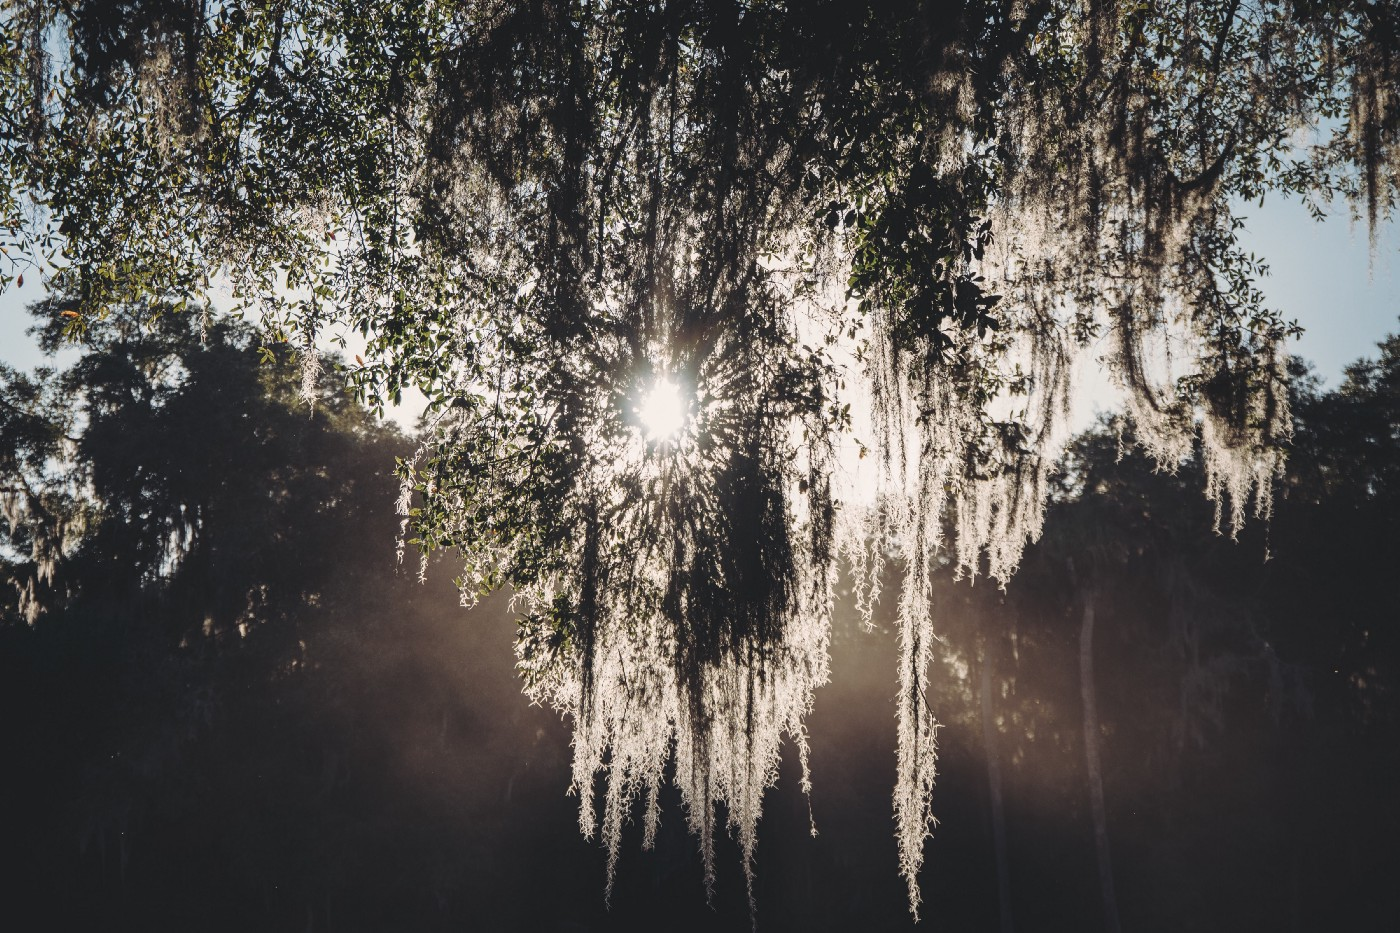 Sunshine through Spanish moss hanging from tree, with more trees in background